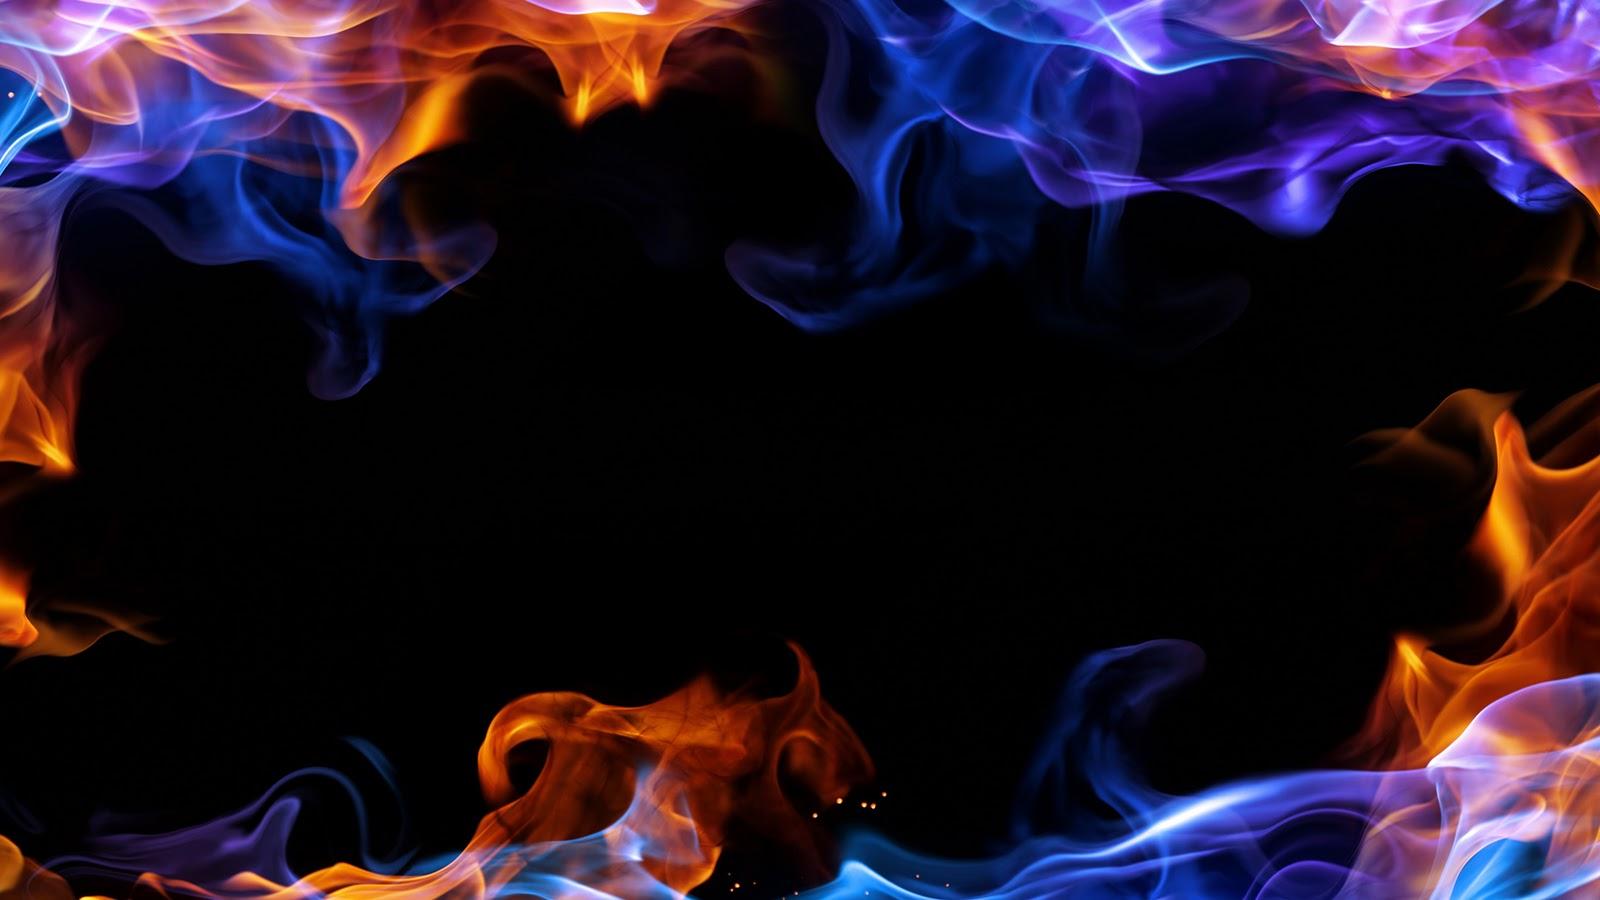 18 Awesome HD Fire Wallpapers